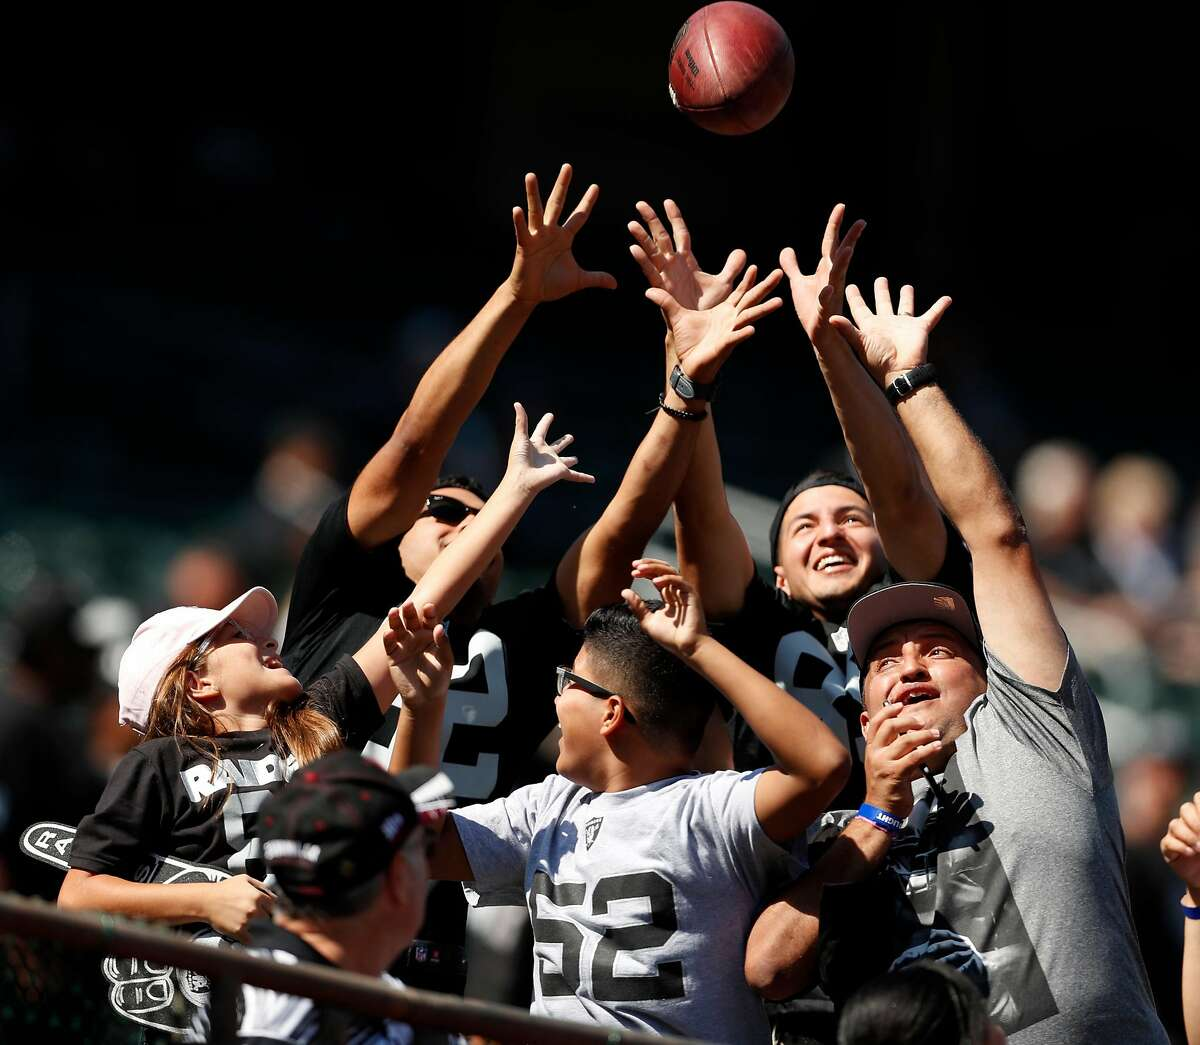 Oakland Raiders' fans try to catch a ball thrown by Cordarrelle Patterson before Raiders play the New York Jets during NFL game at Oakland Coliseum in Oakland, Calif., on Sunday, September 17, 2017.